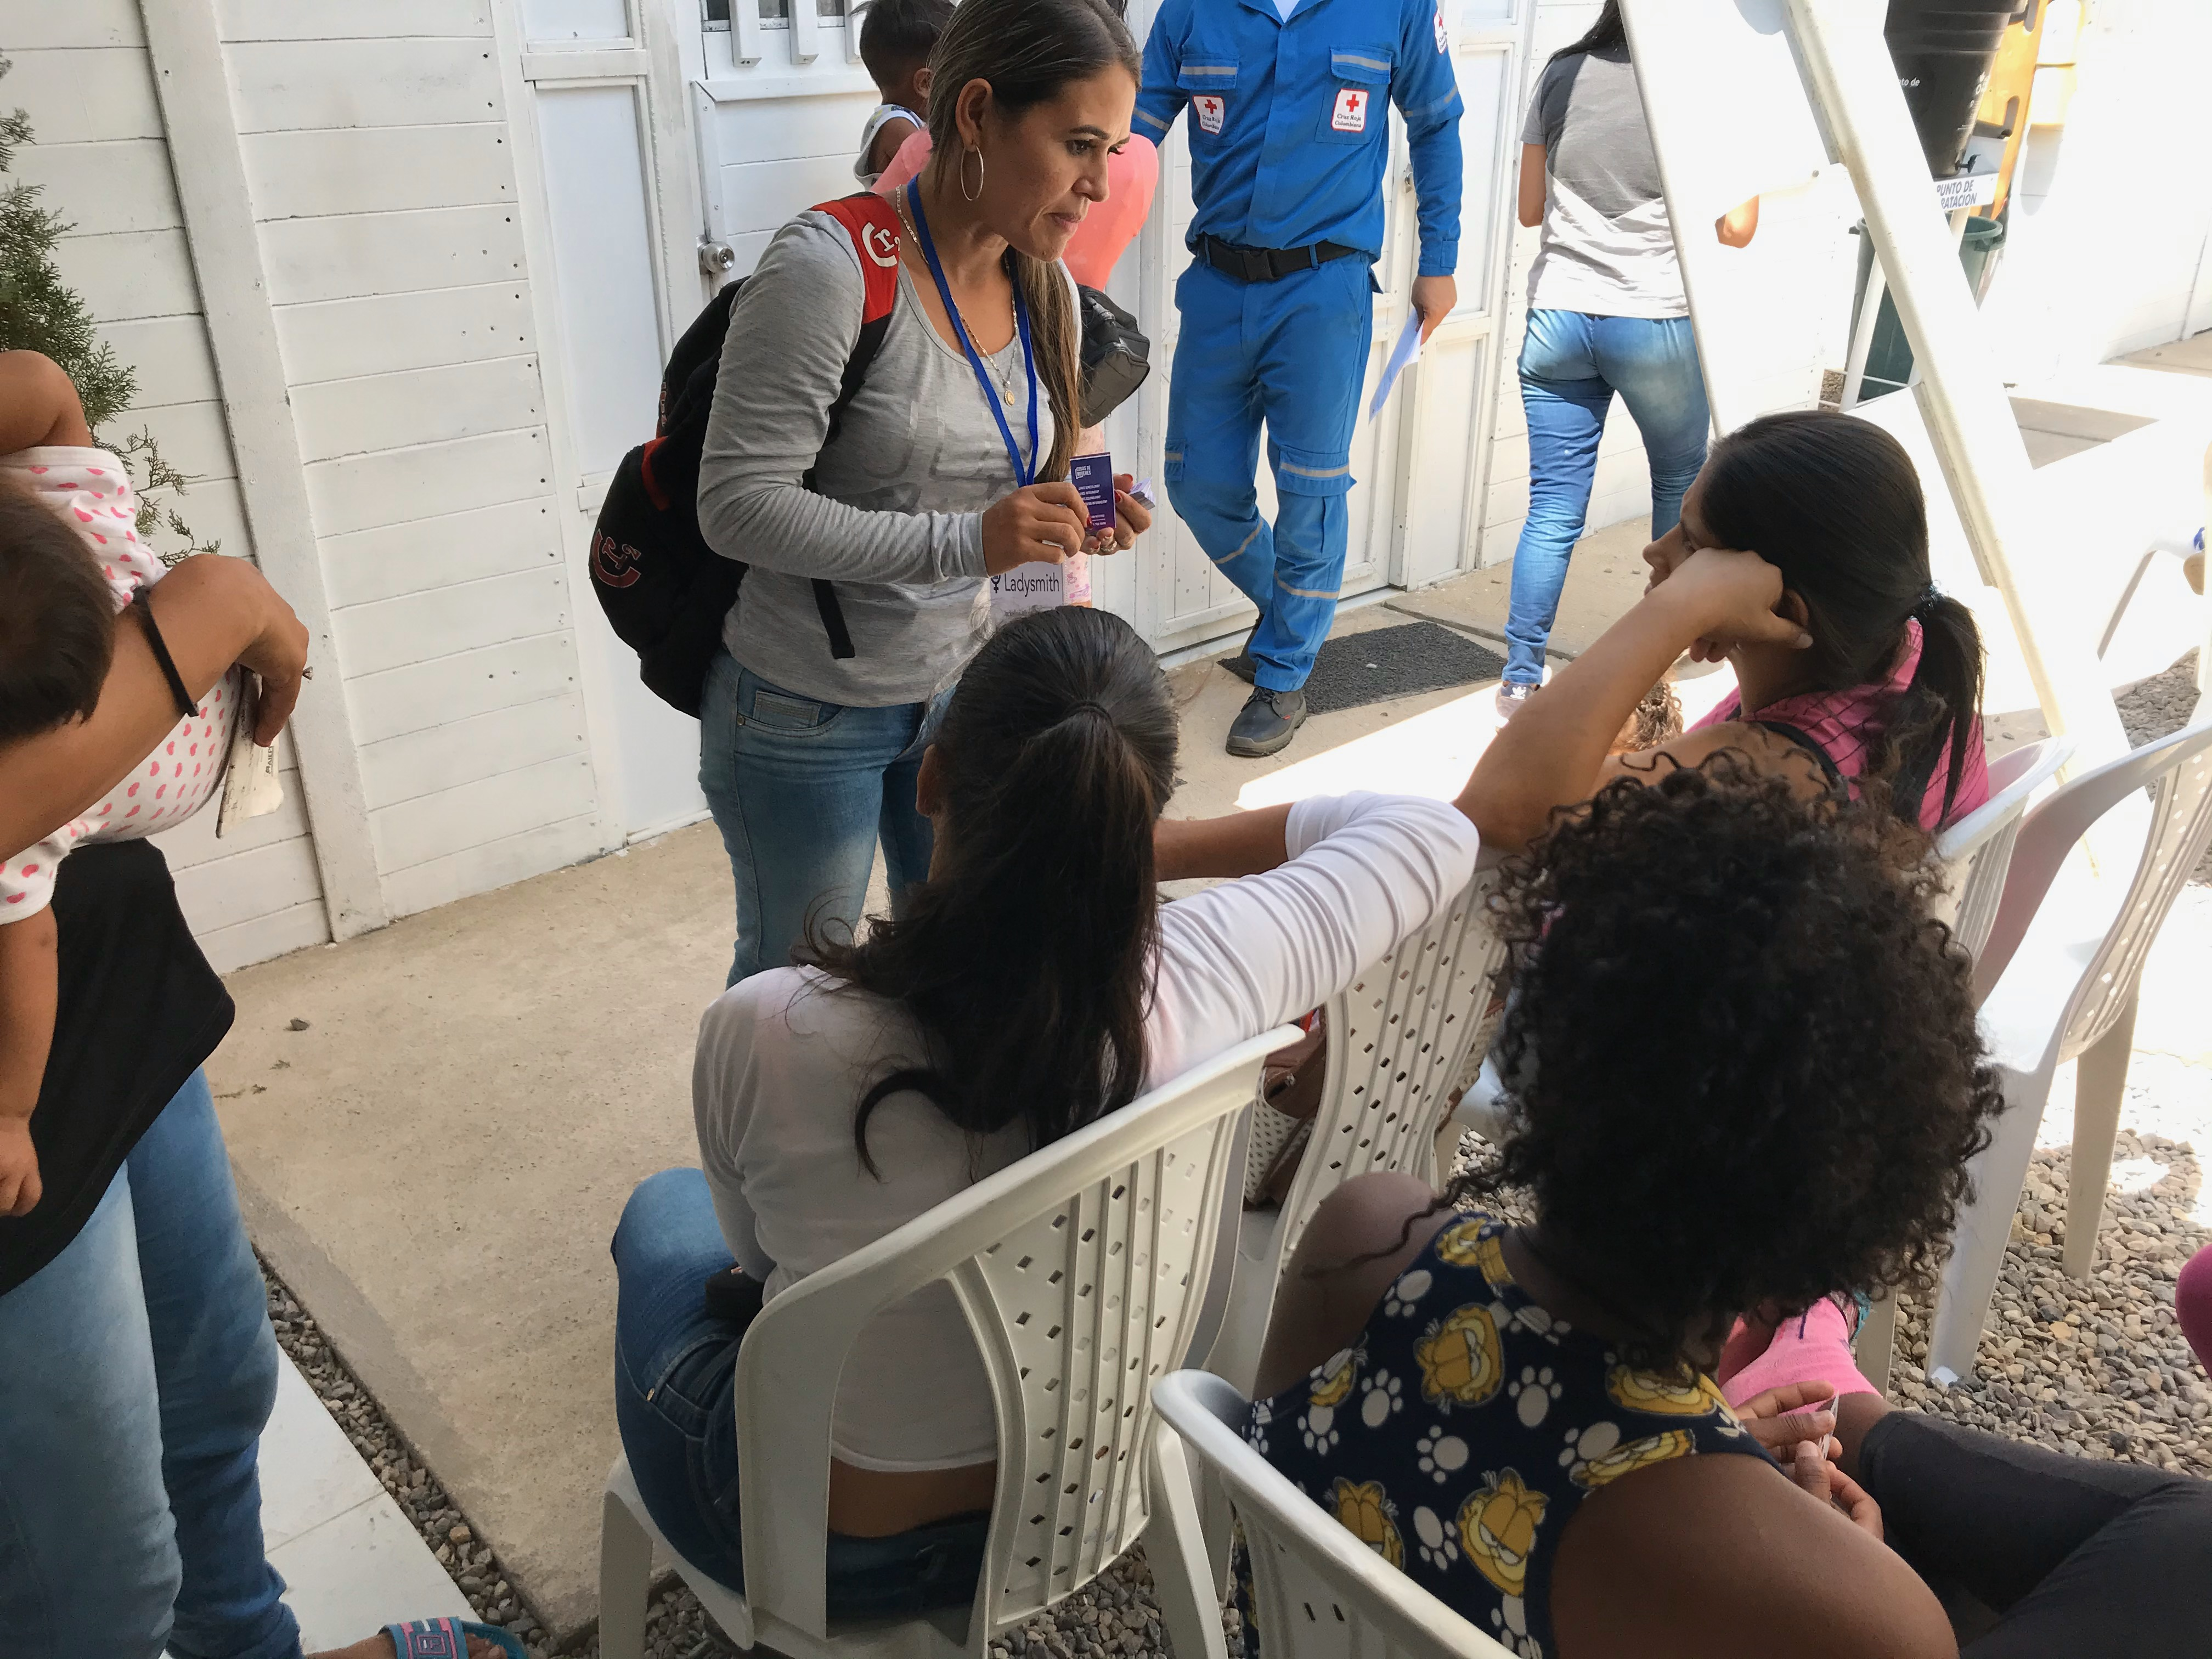 A social worker consults with women at Cosas de Mujeres in Colombia. Photo by Ladysmith